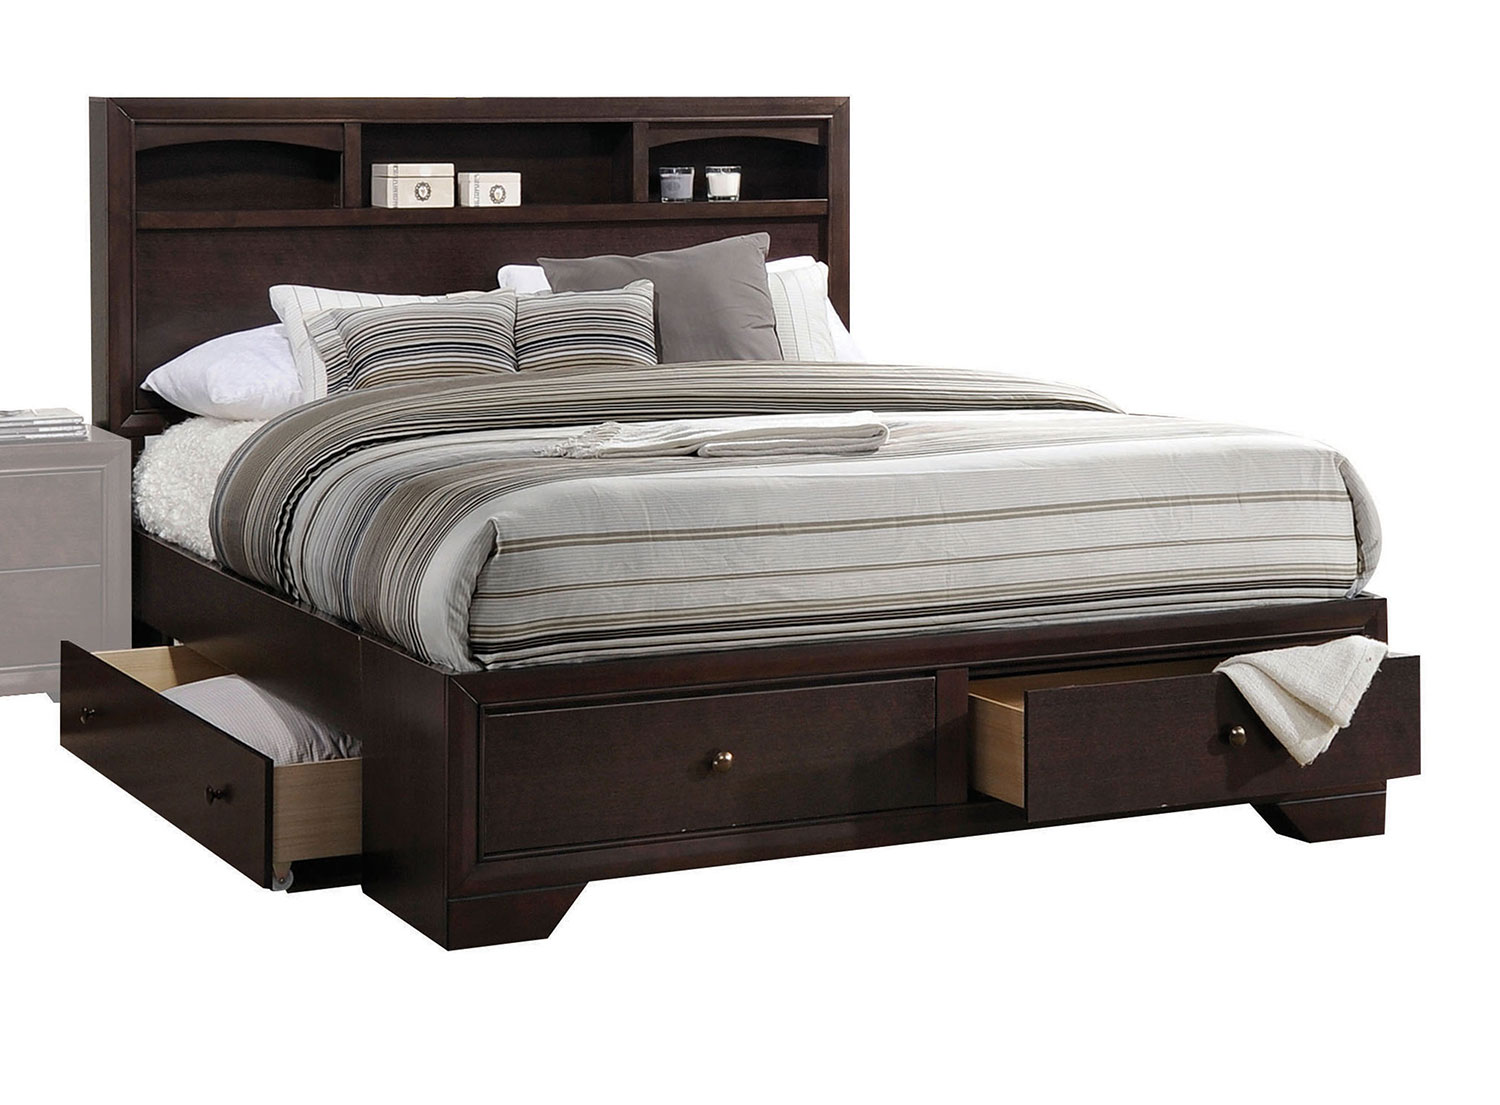 Acme Madison II Bed with Storage - Espresso